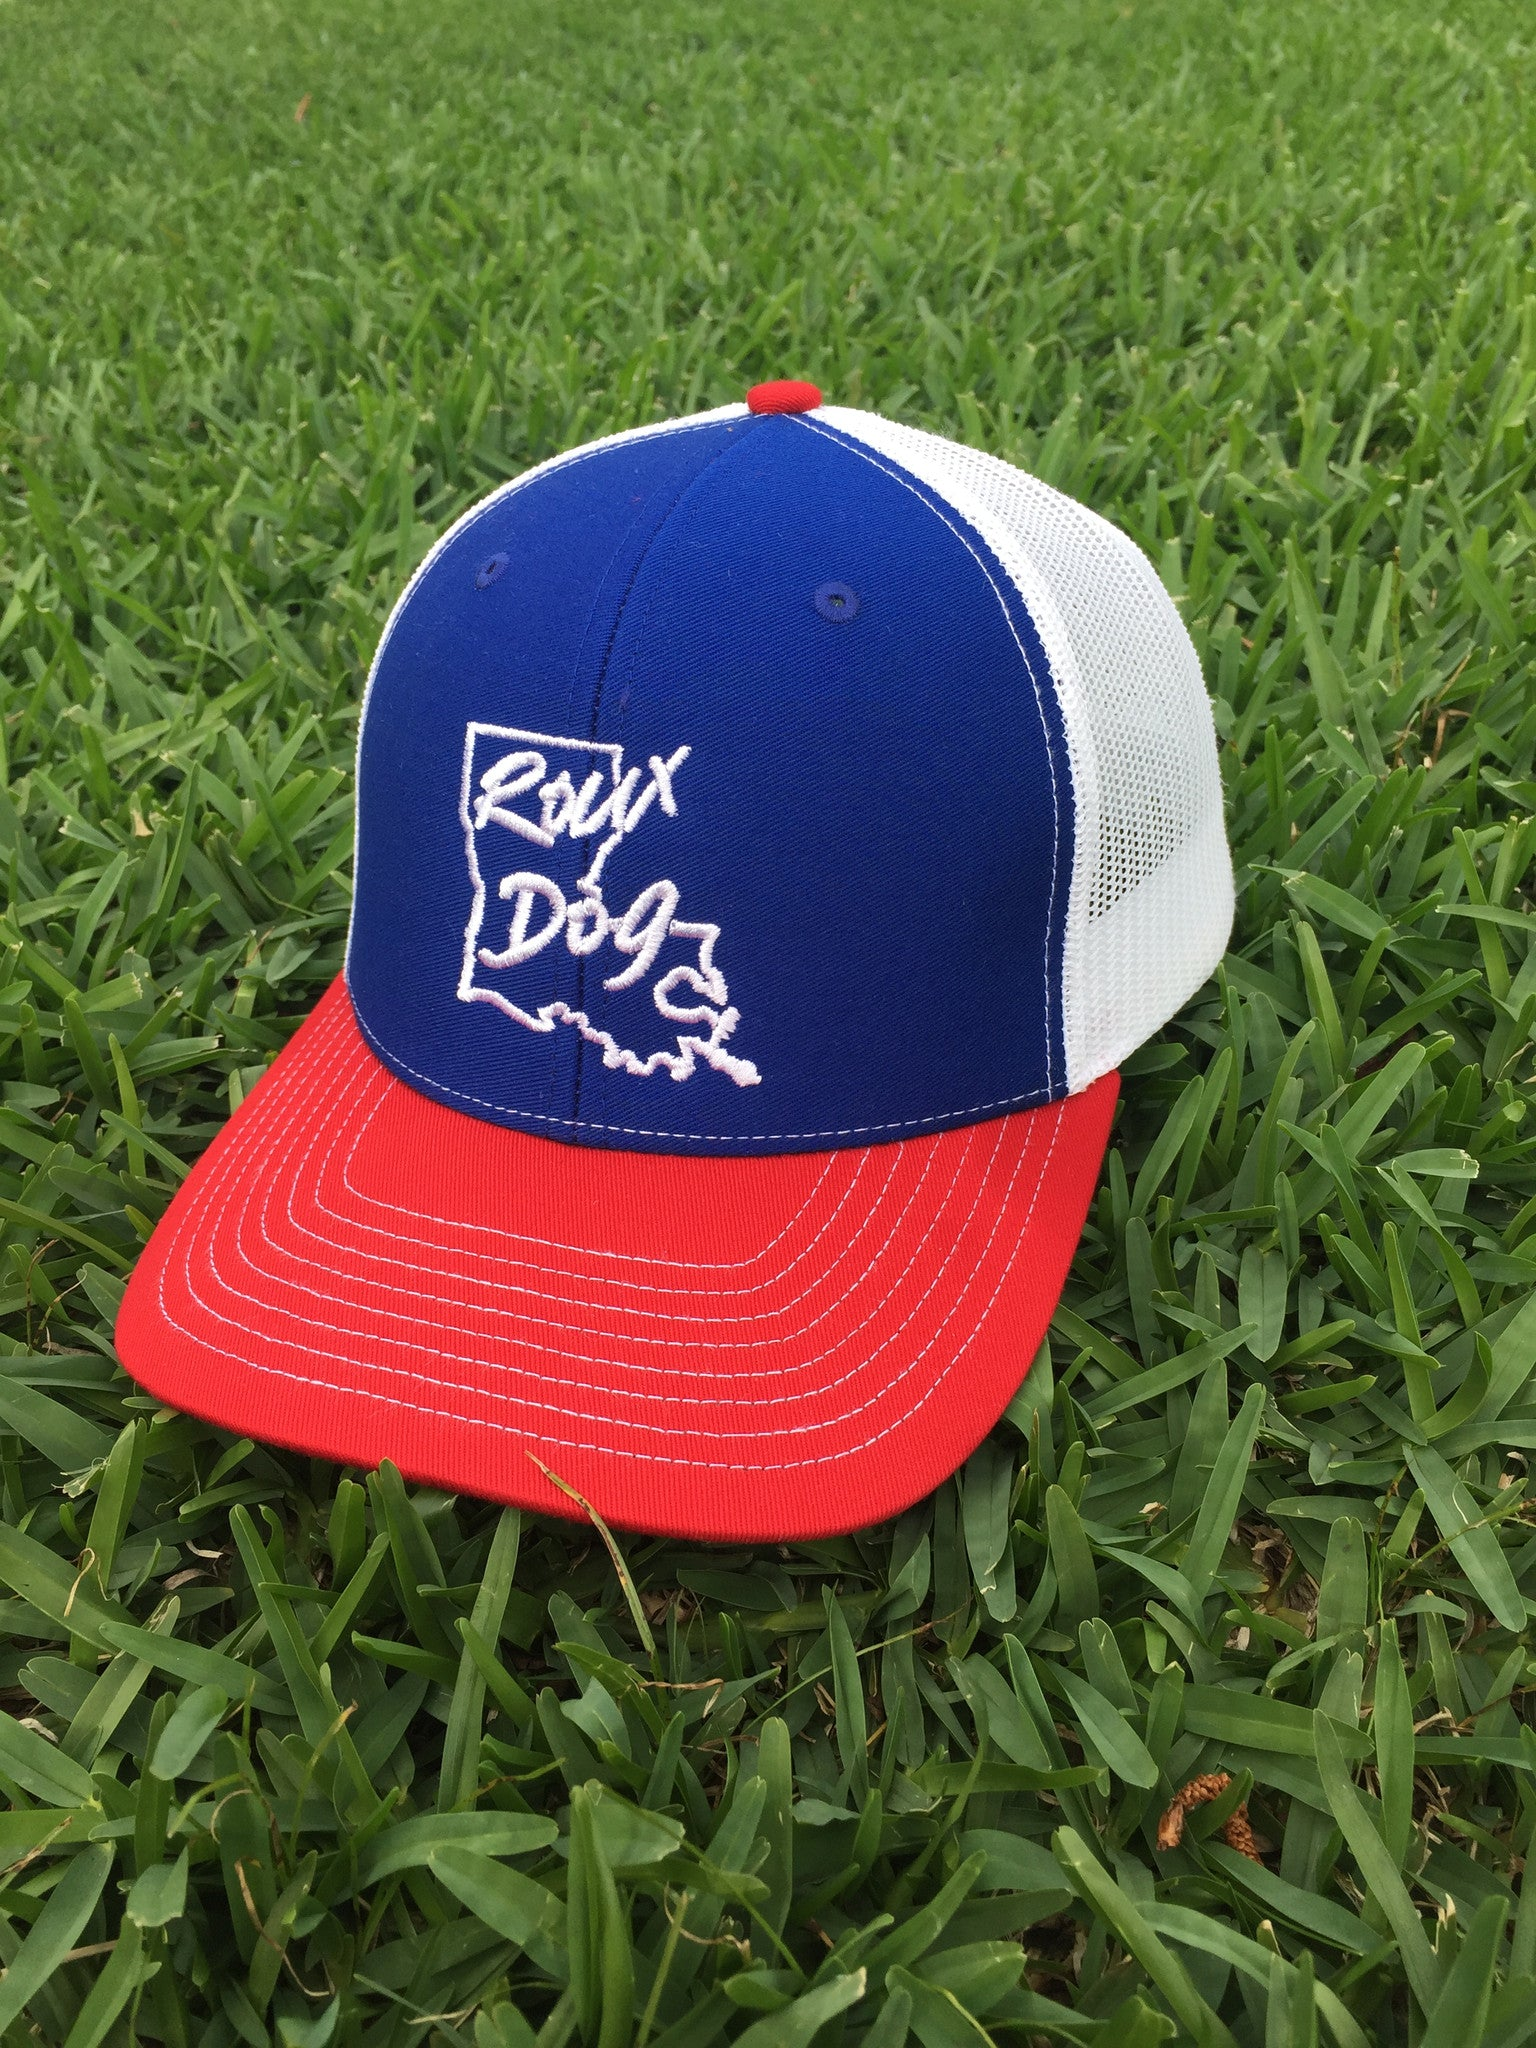 Roux Dog Logo Mesh Back Cap -- Royal/White/Red